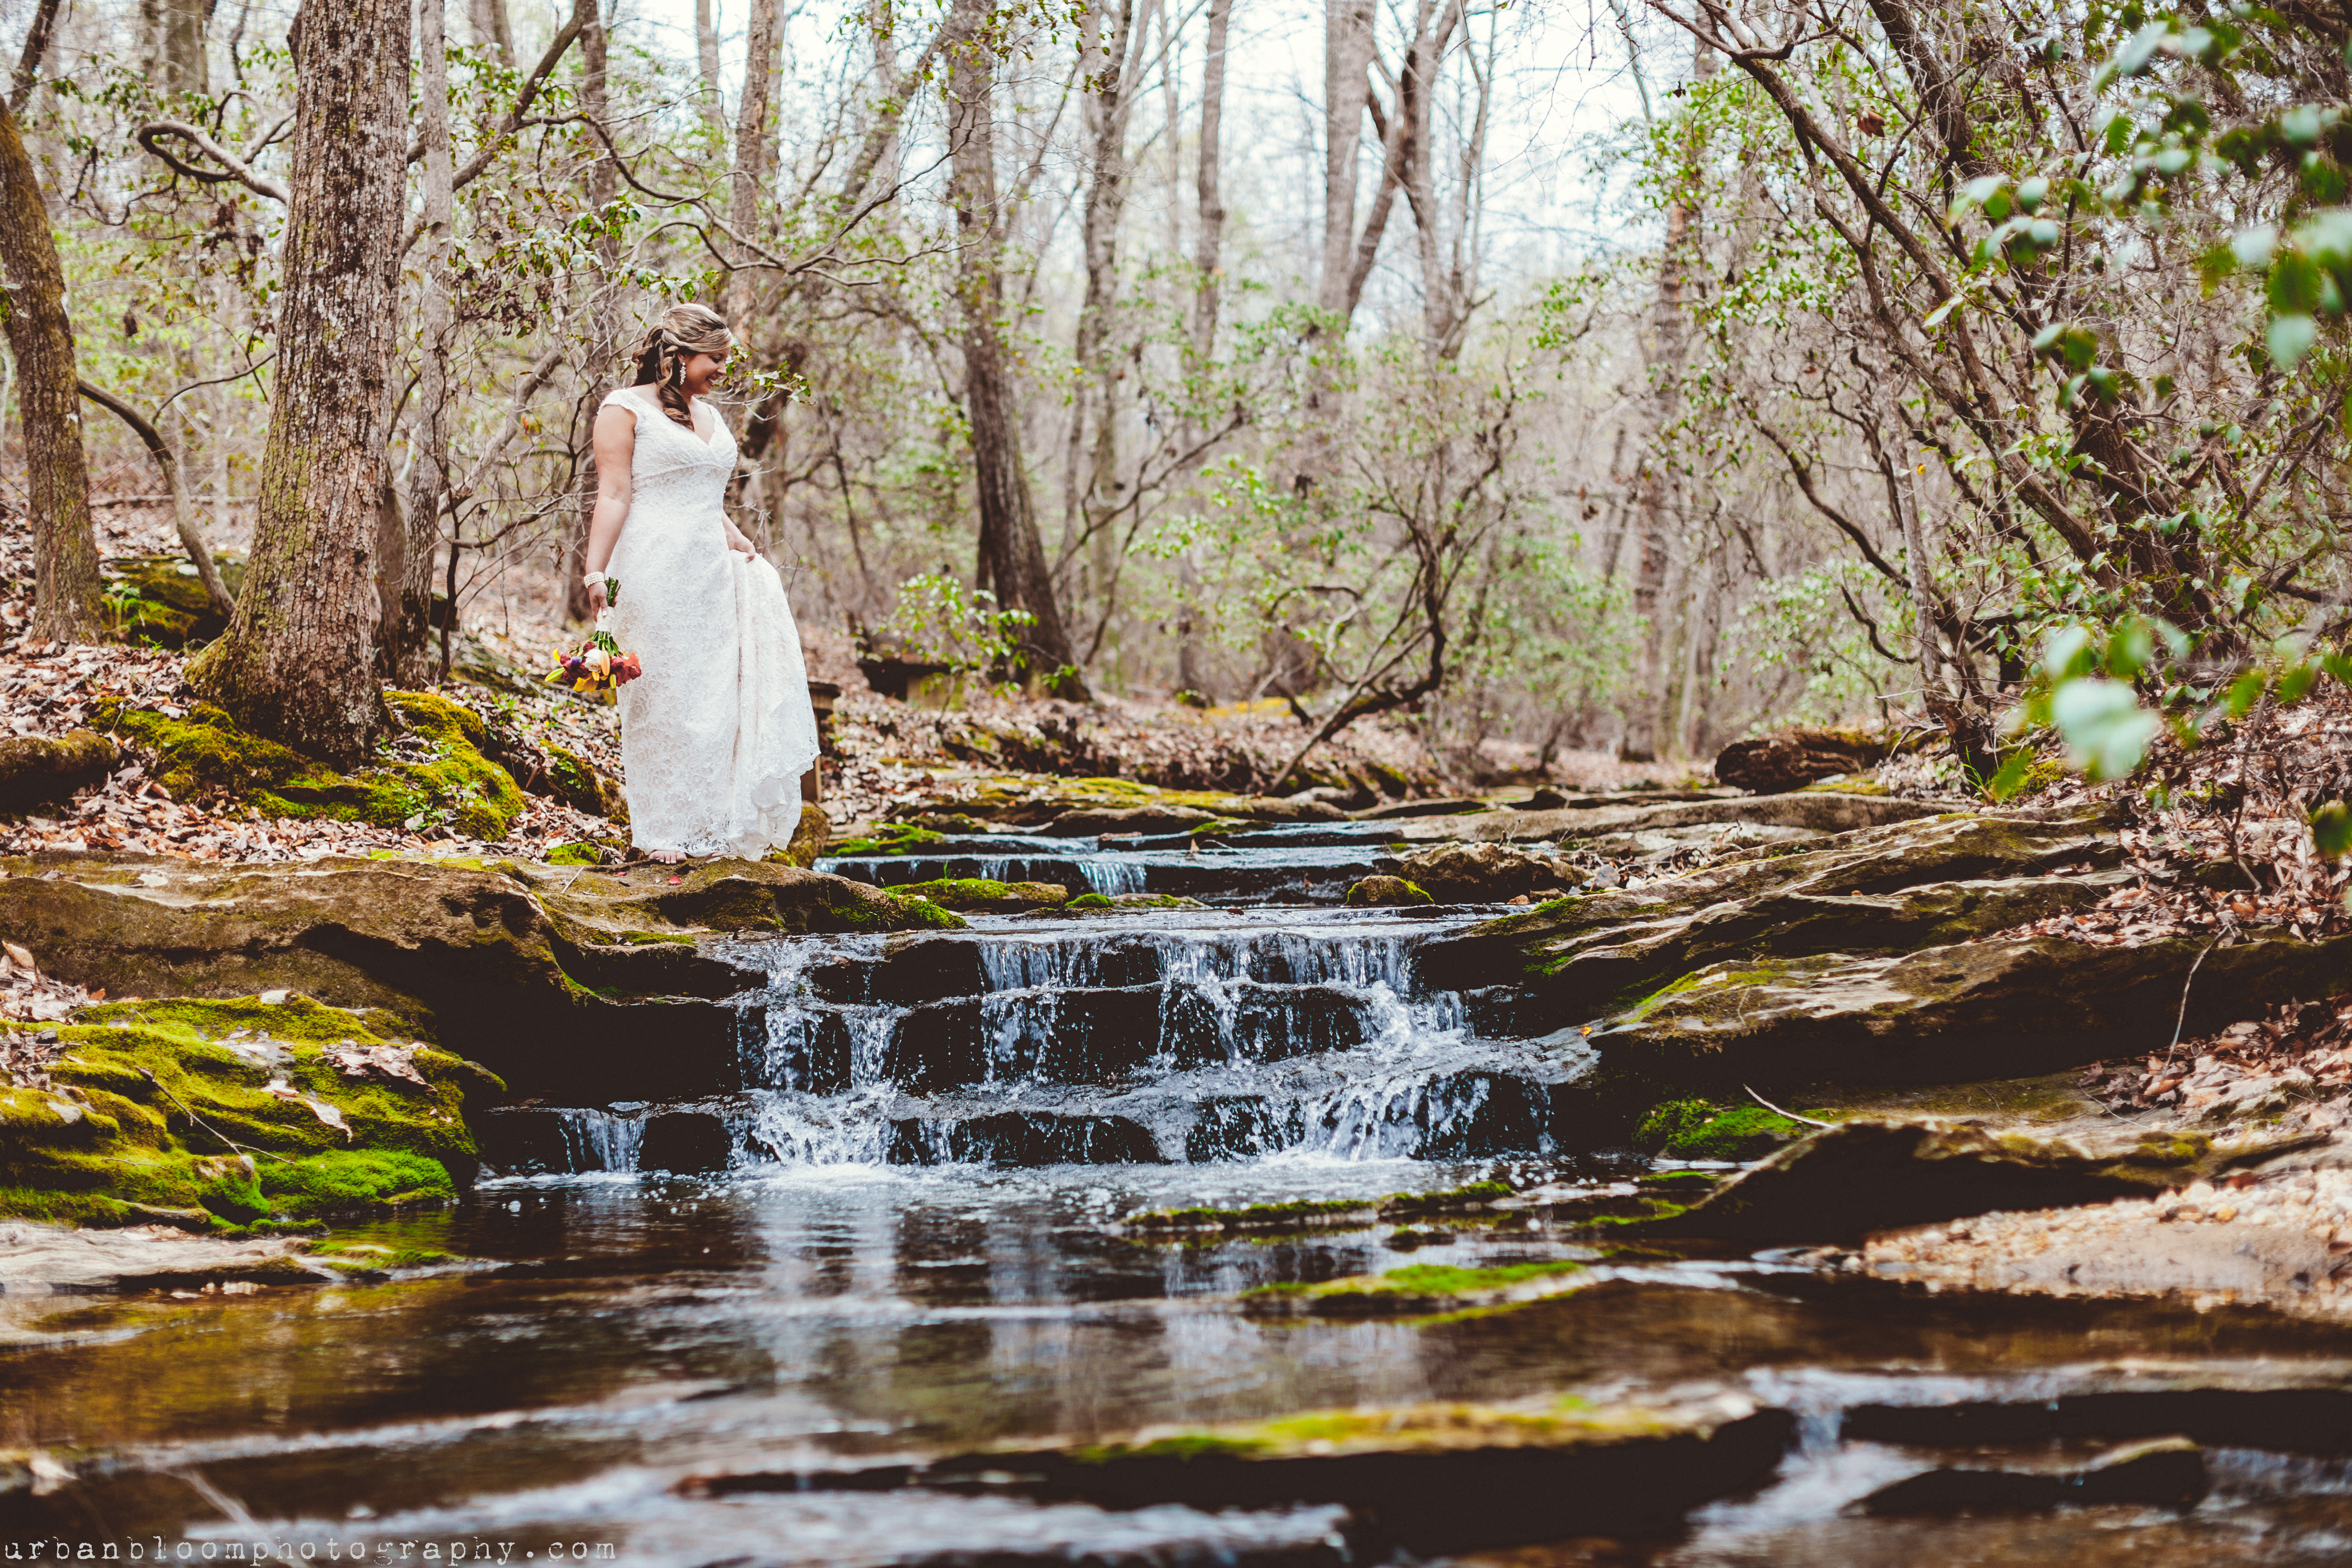 Bridal Session in a Natural Setting